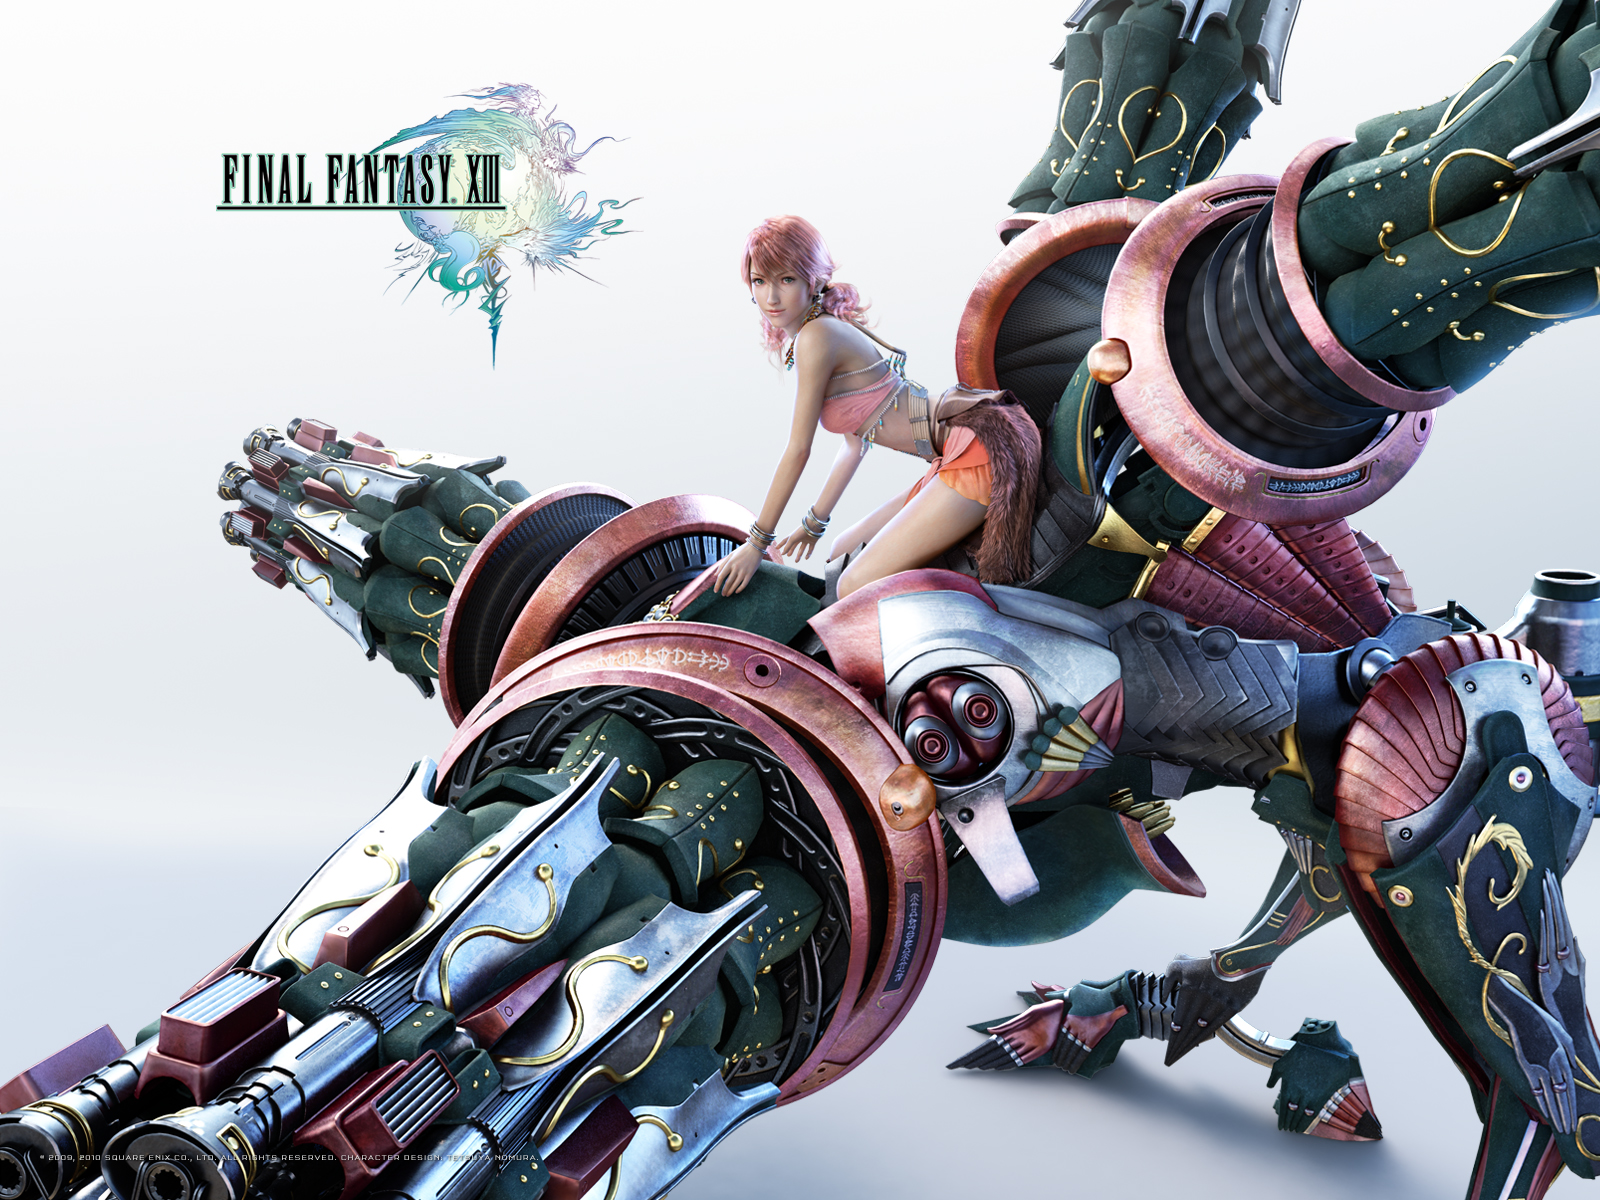 Final Fantasy XIII images FF XIII Wallpaper HD wallpaper and background photos